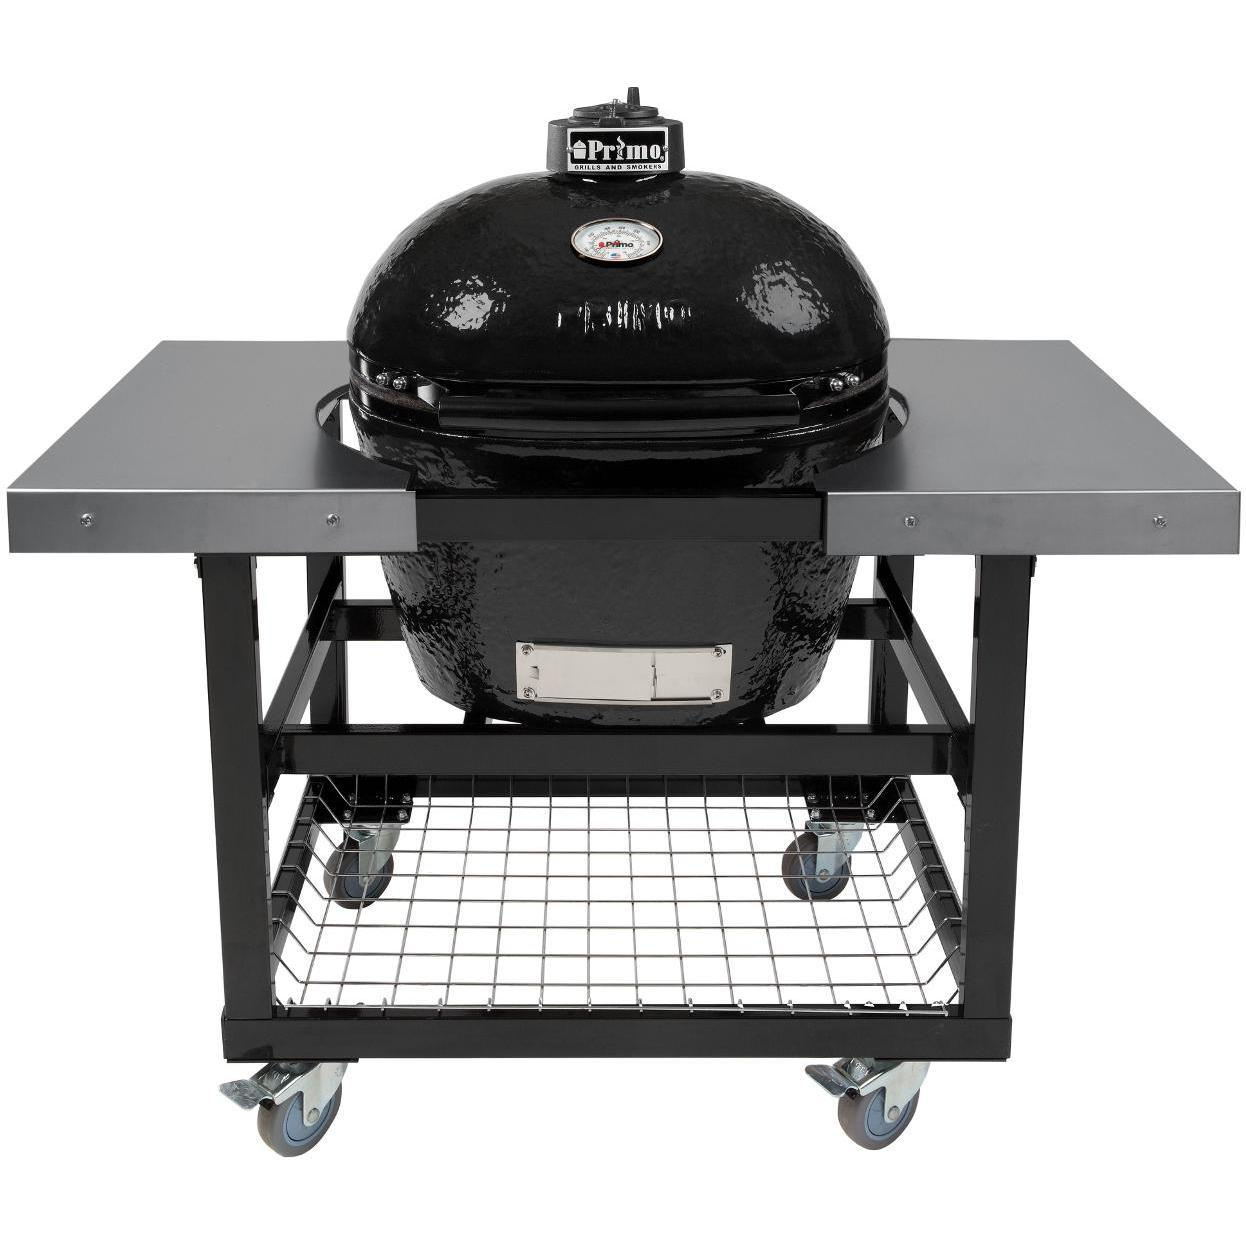 fireplace bbq and appliances fireside woodland hills primo oval large ceramic kamado grill steel cart with stainless side tables outdoor table for live edge end counter pub wood